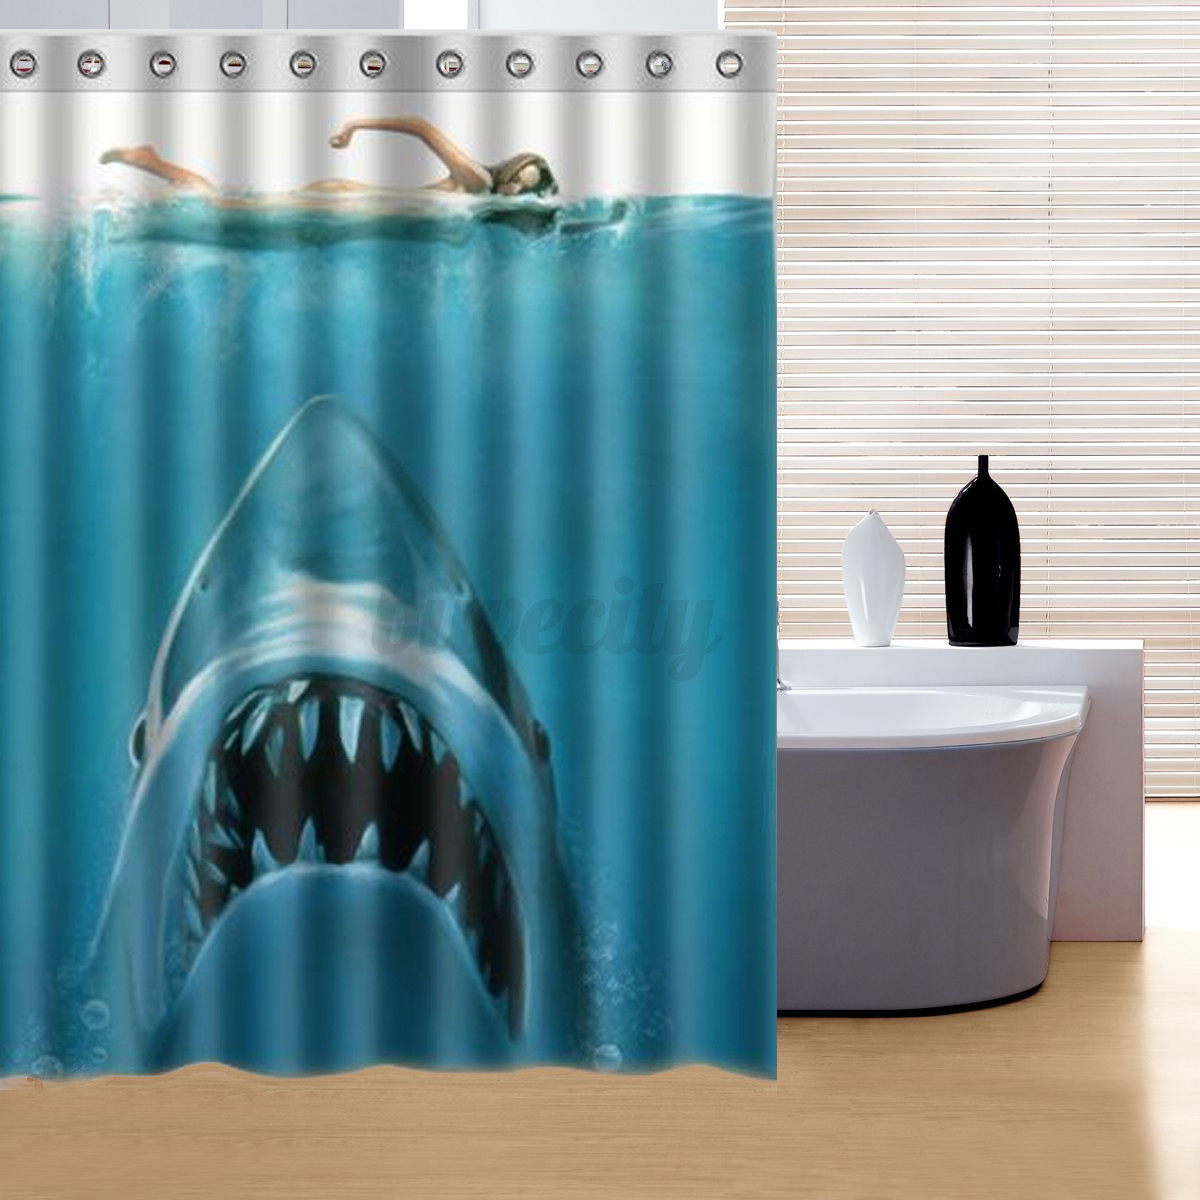 Waterproof shark underwater jaws polyester bath shower curtain 60 x 72 w hook ebay for How do sharks use the bathroom